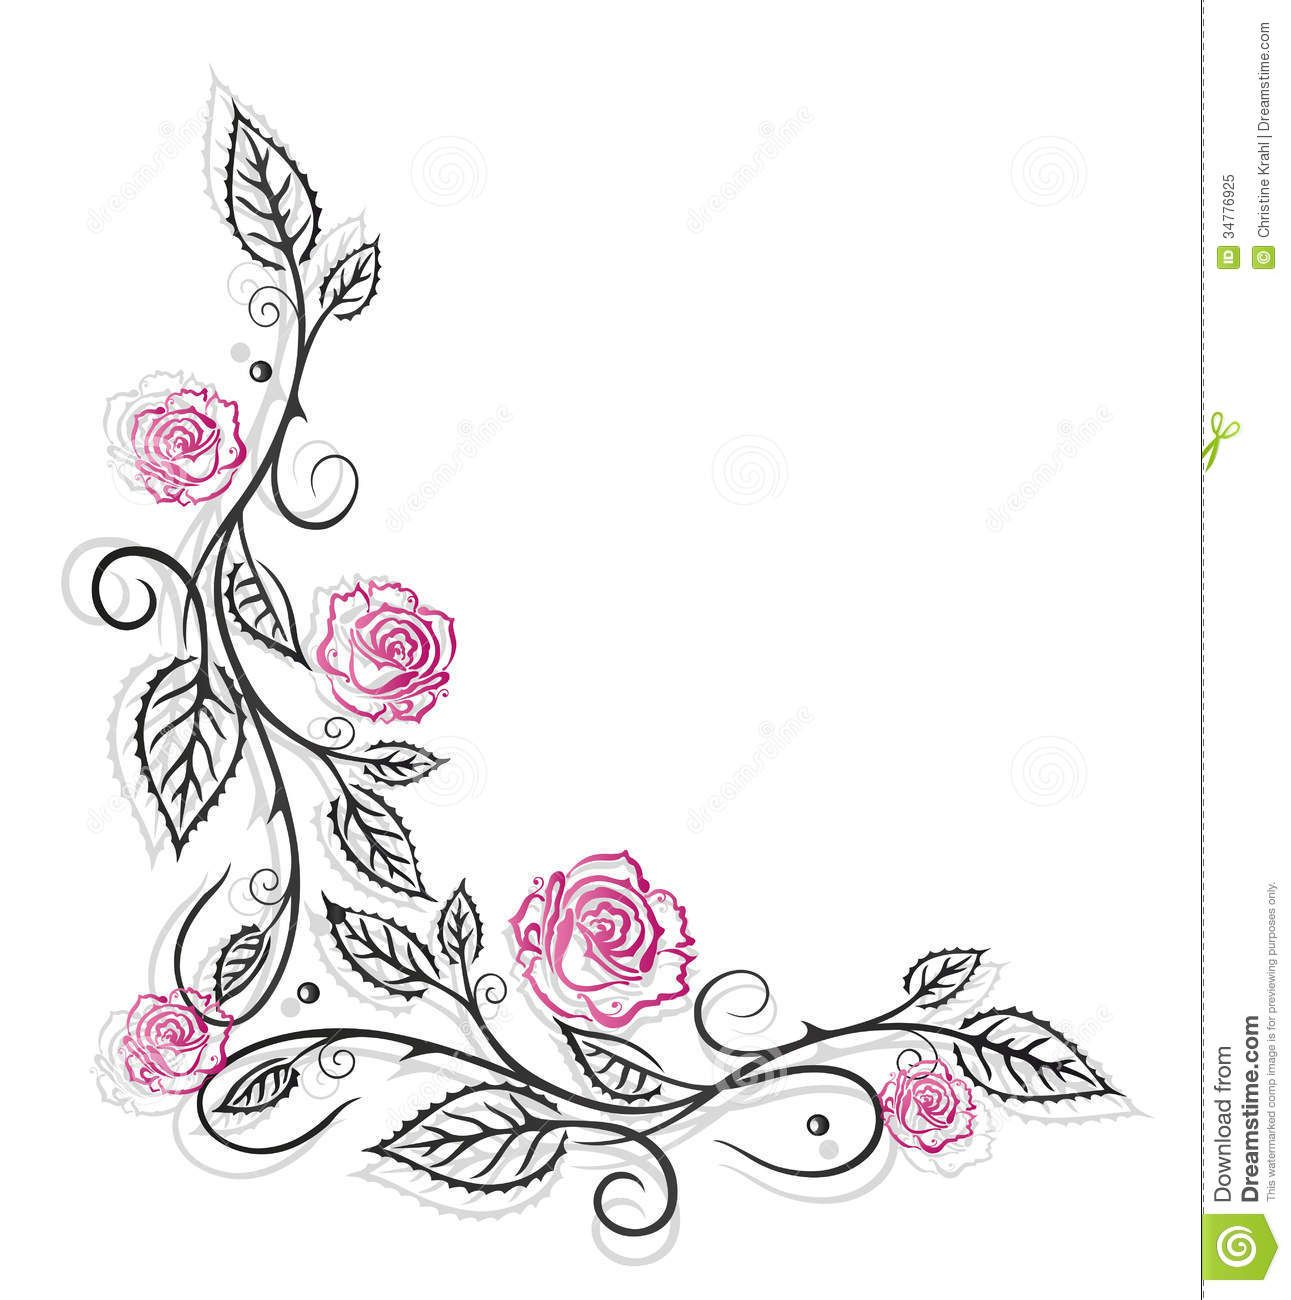 Rose Flower Border Black And White Google Search Flower Vine Tattoos Rose Vine Tattoos Vintage Borders